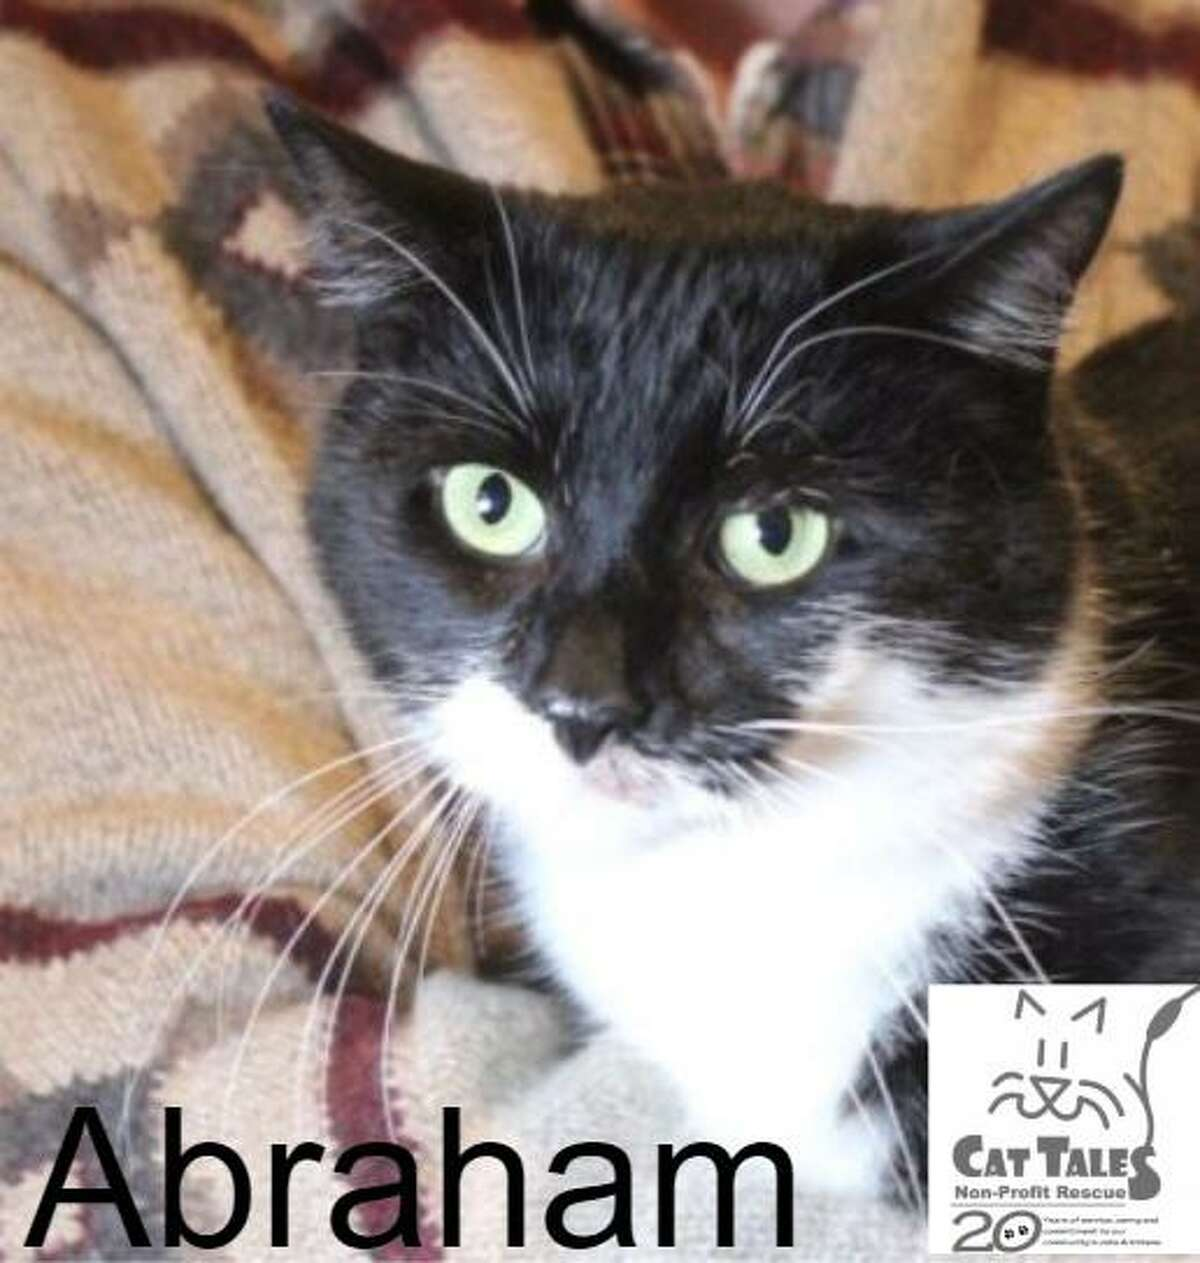 """Abraham, a black and white male about a year old, is waiting for his forever home. He says, """" I'm a very sweet kitty, love to be petted and like to play. I sometimes like to be held, when I'm in the mood. Cat Tales is taking good care of me now and I have a small surgery coming up. I will be ready to go home very soon, so in the meantime I'd love for you to come meet me! Maybe I'm that kitty you've been looking for."""" Visithttp://www.CatTalesCT.org/cats/Abraham, email: info@CatTalesCT.org or call 860-344-9043 . Watch our TV commercial: https://youtu.be/Y1MECIS4mIc"""